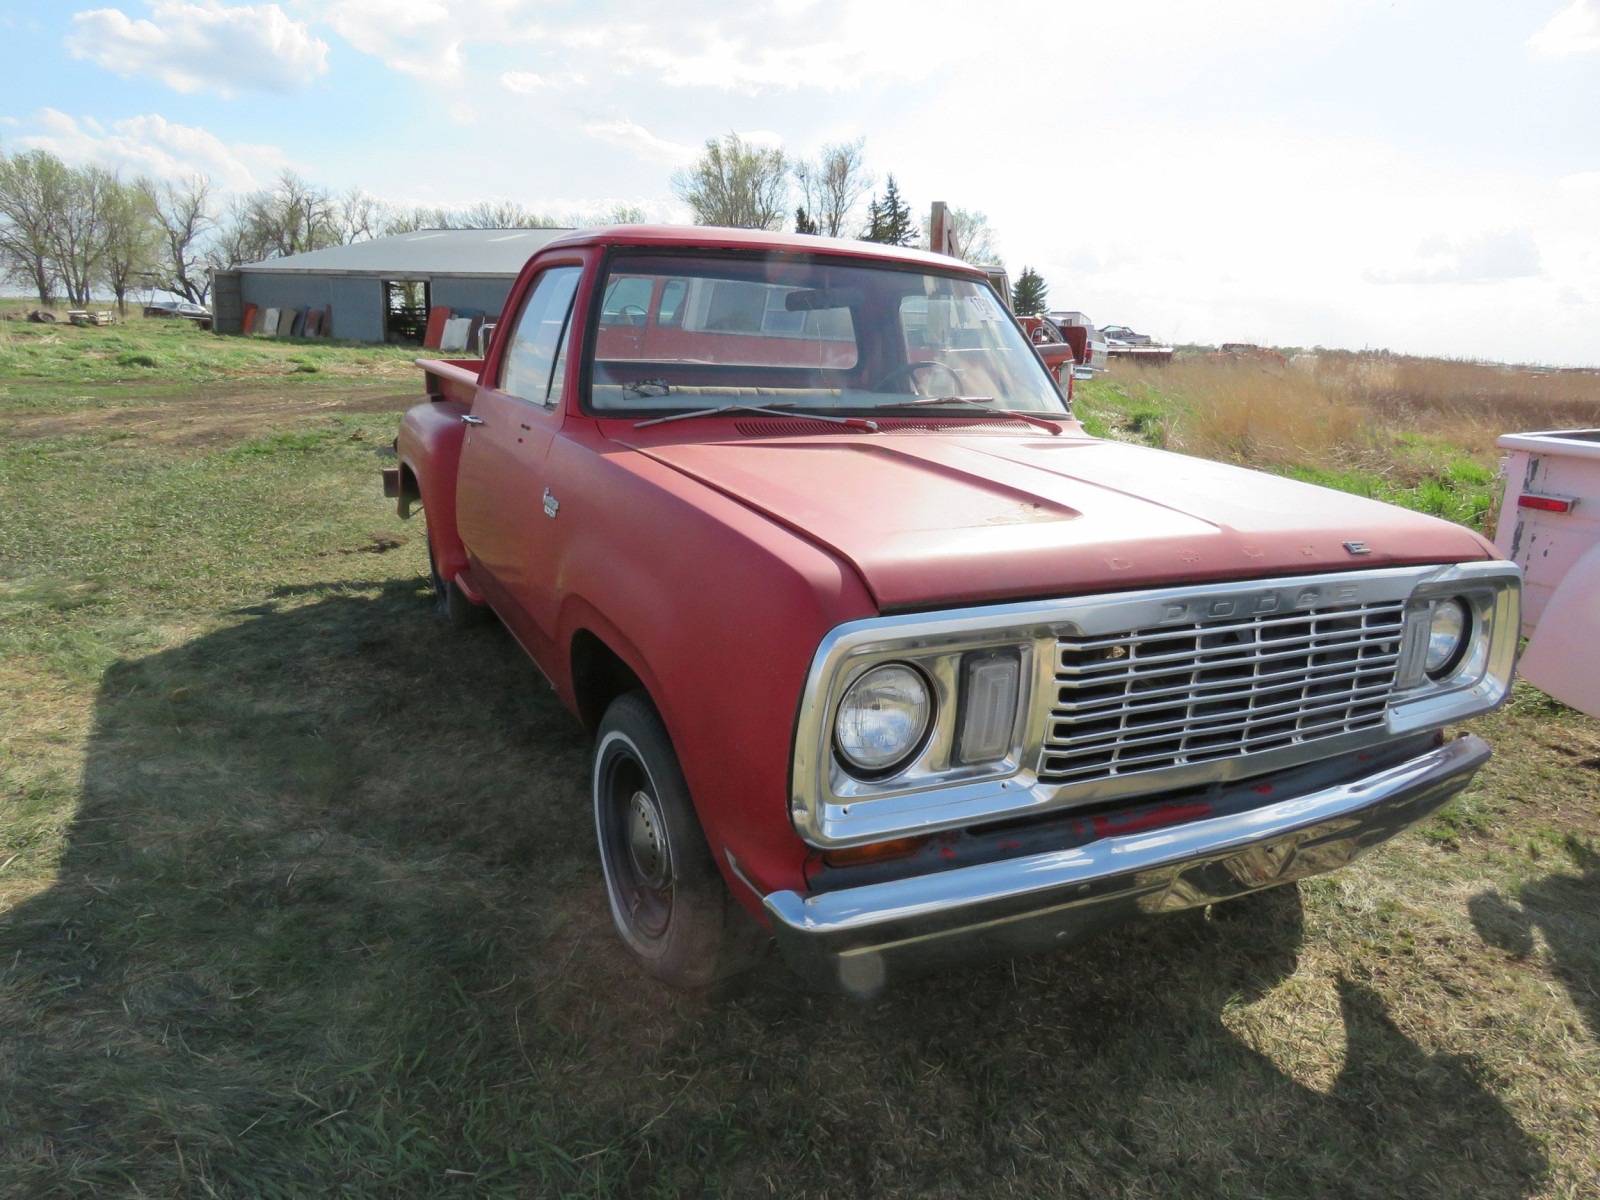 1975 Dodge D100 Pickup - Image 2